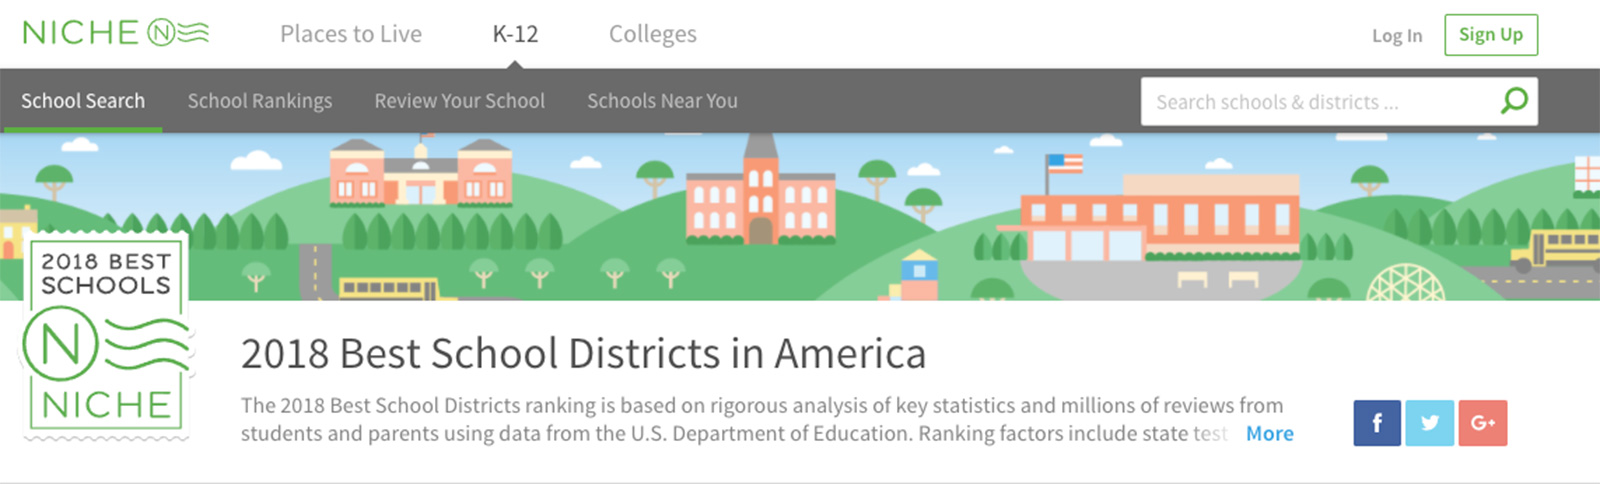 Niche.com 2018 Best School Districts in America